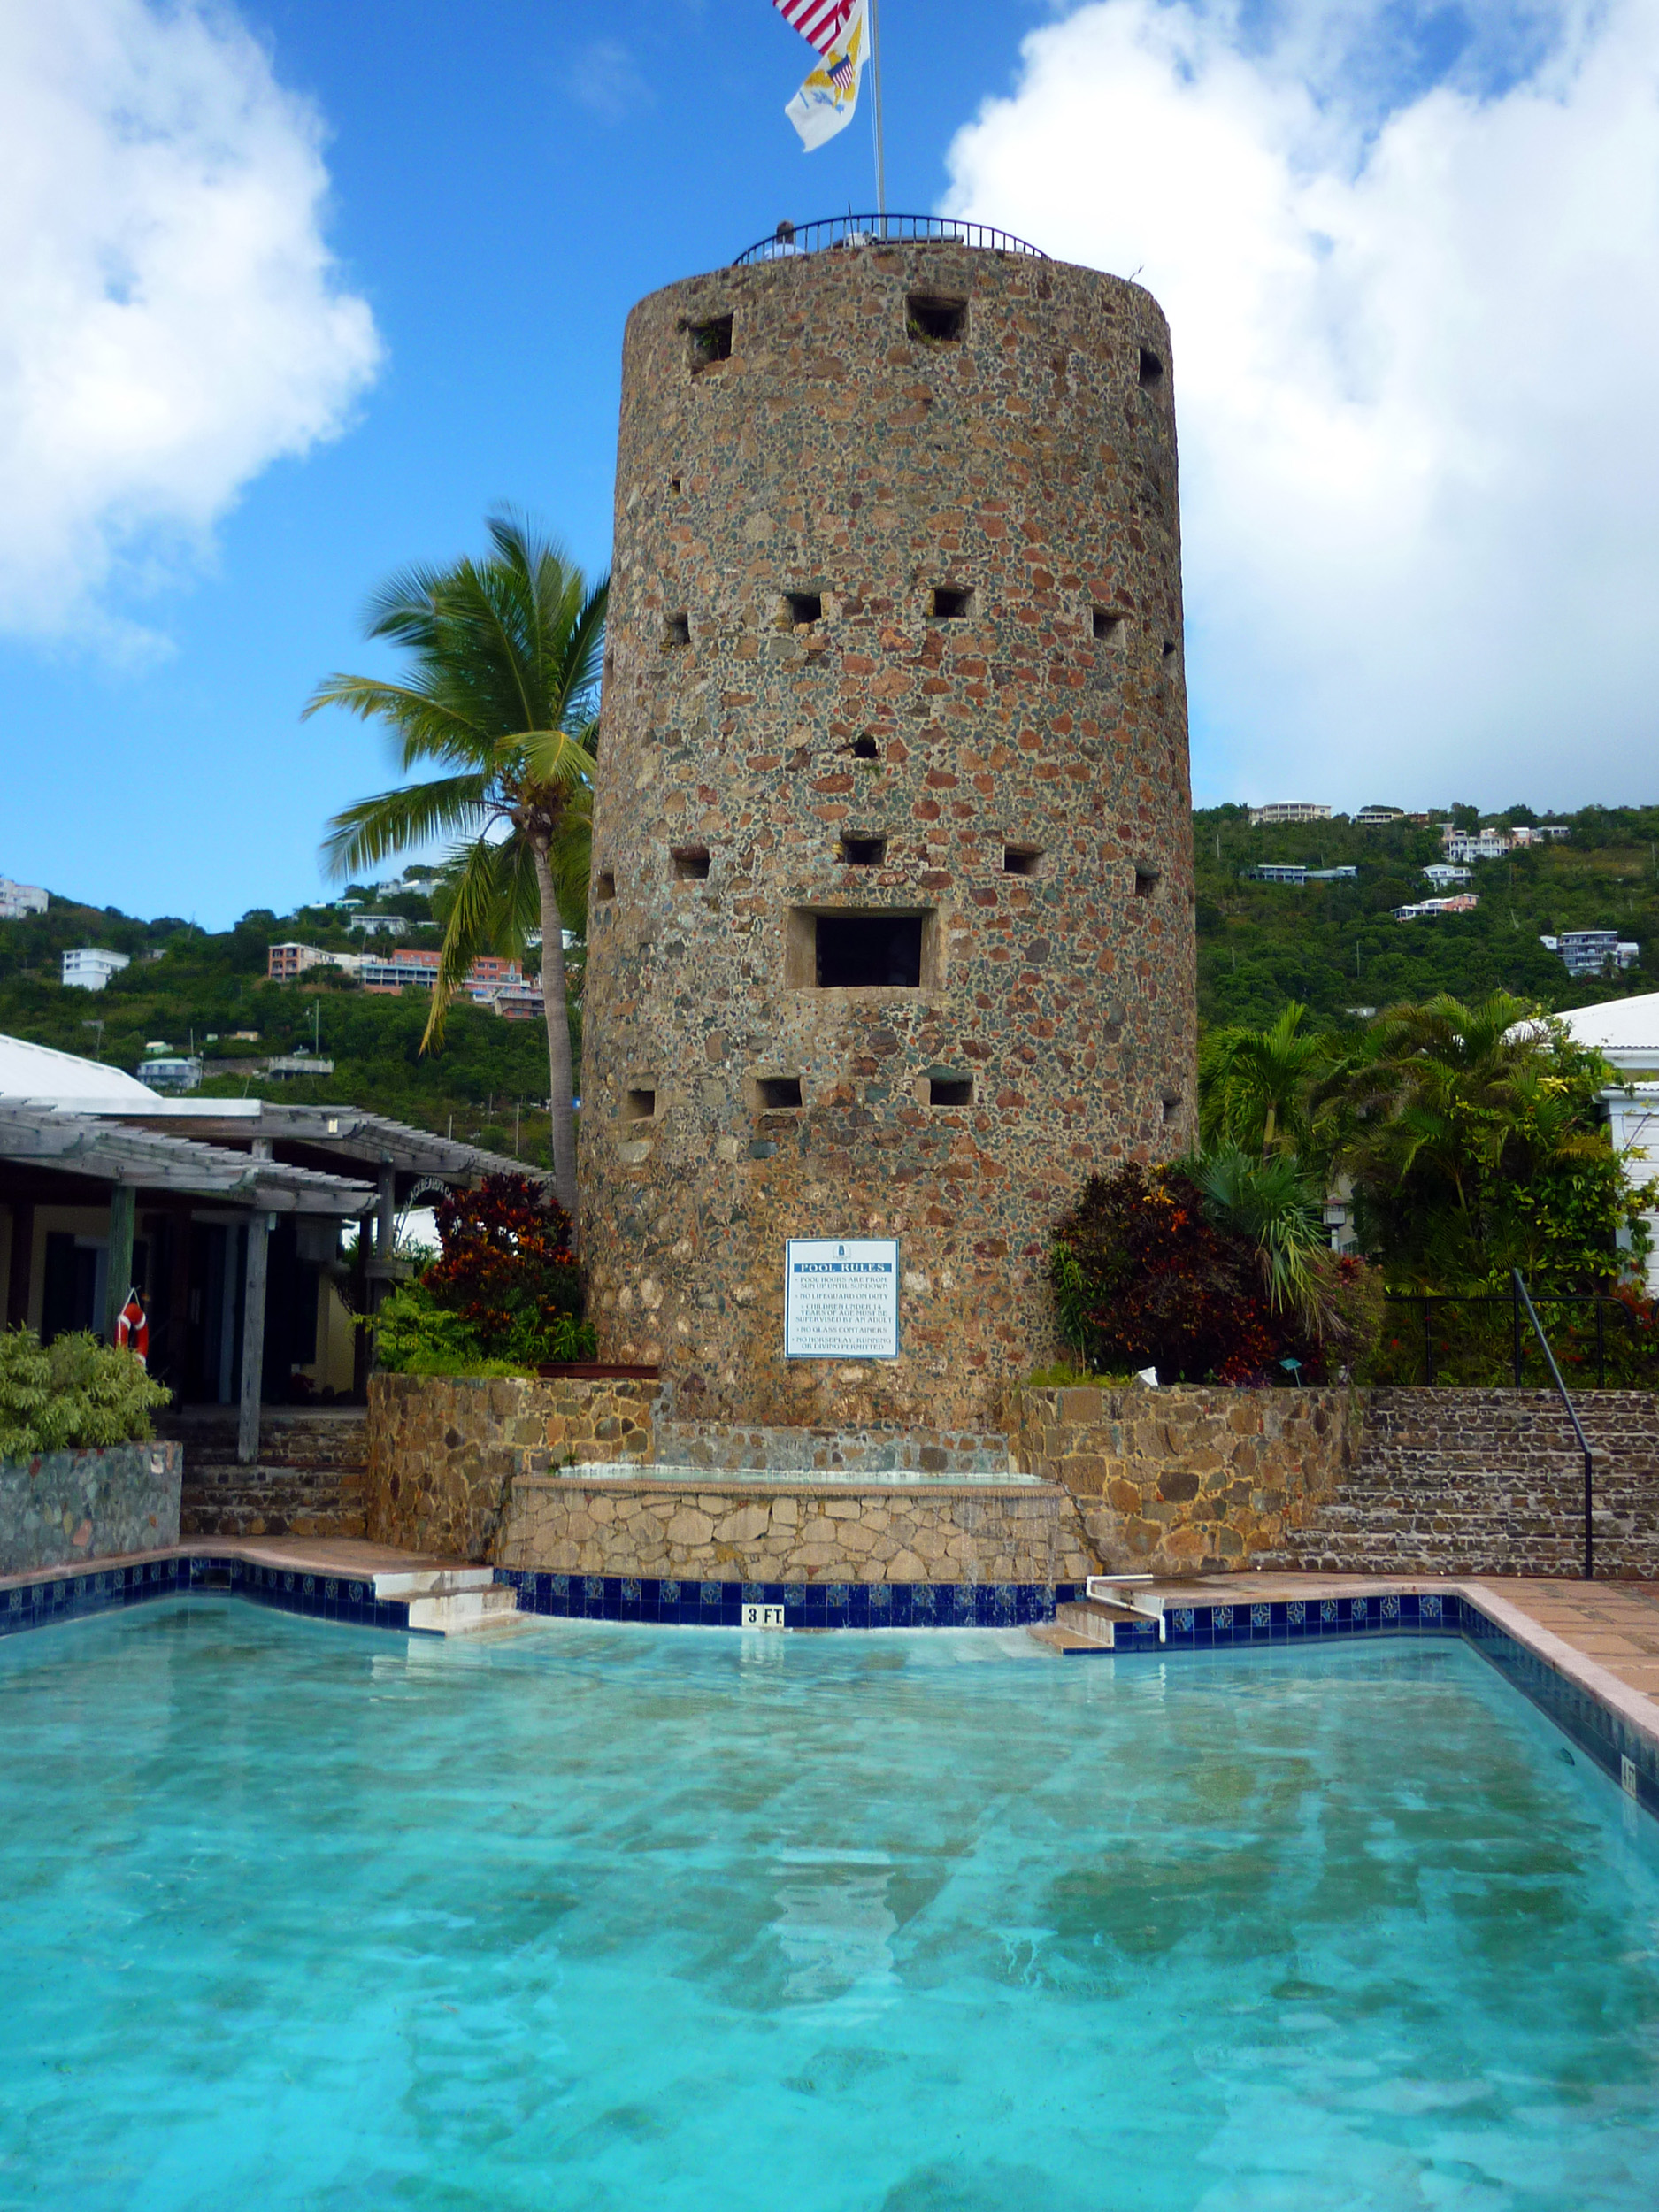 tower of pirate blackbeards castle, charlotte amalie, US vigrin islands